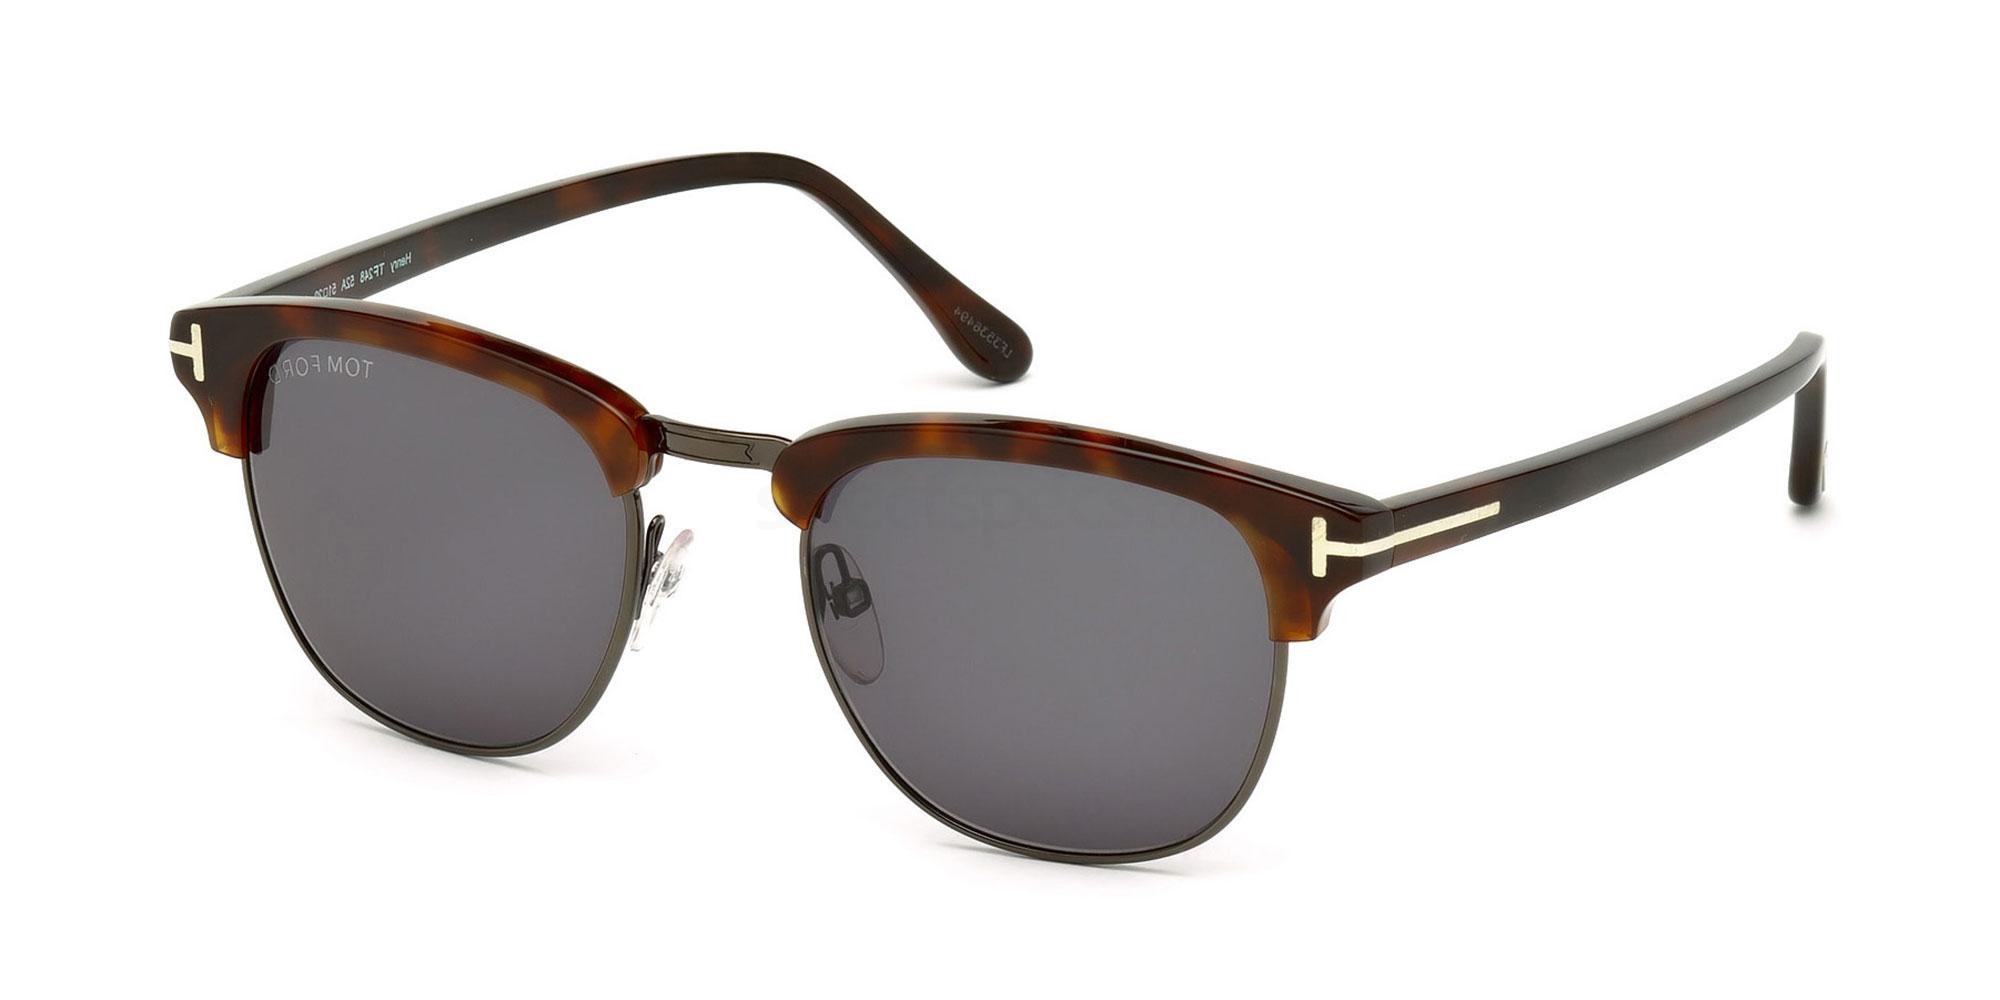 Tom Ford FT0248 Henry sunglasses at SelectSpecs